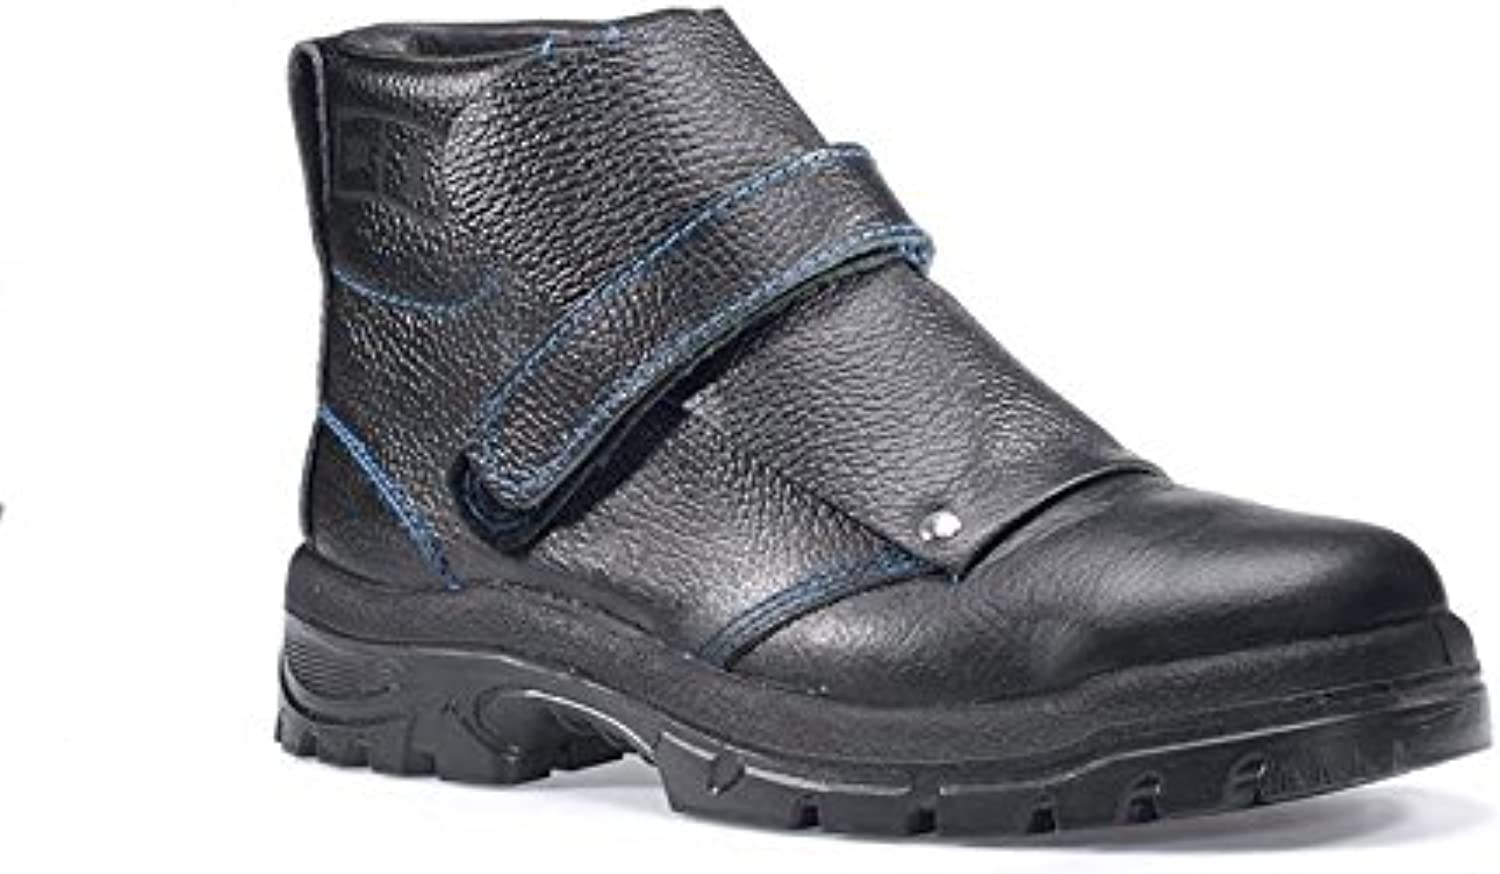 GOLIATH WELDERS SAFETY BOOT (6)